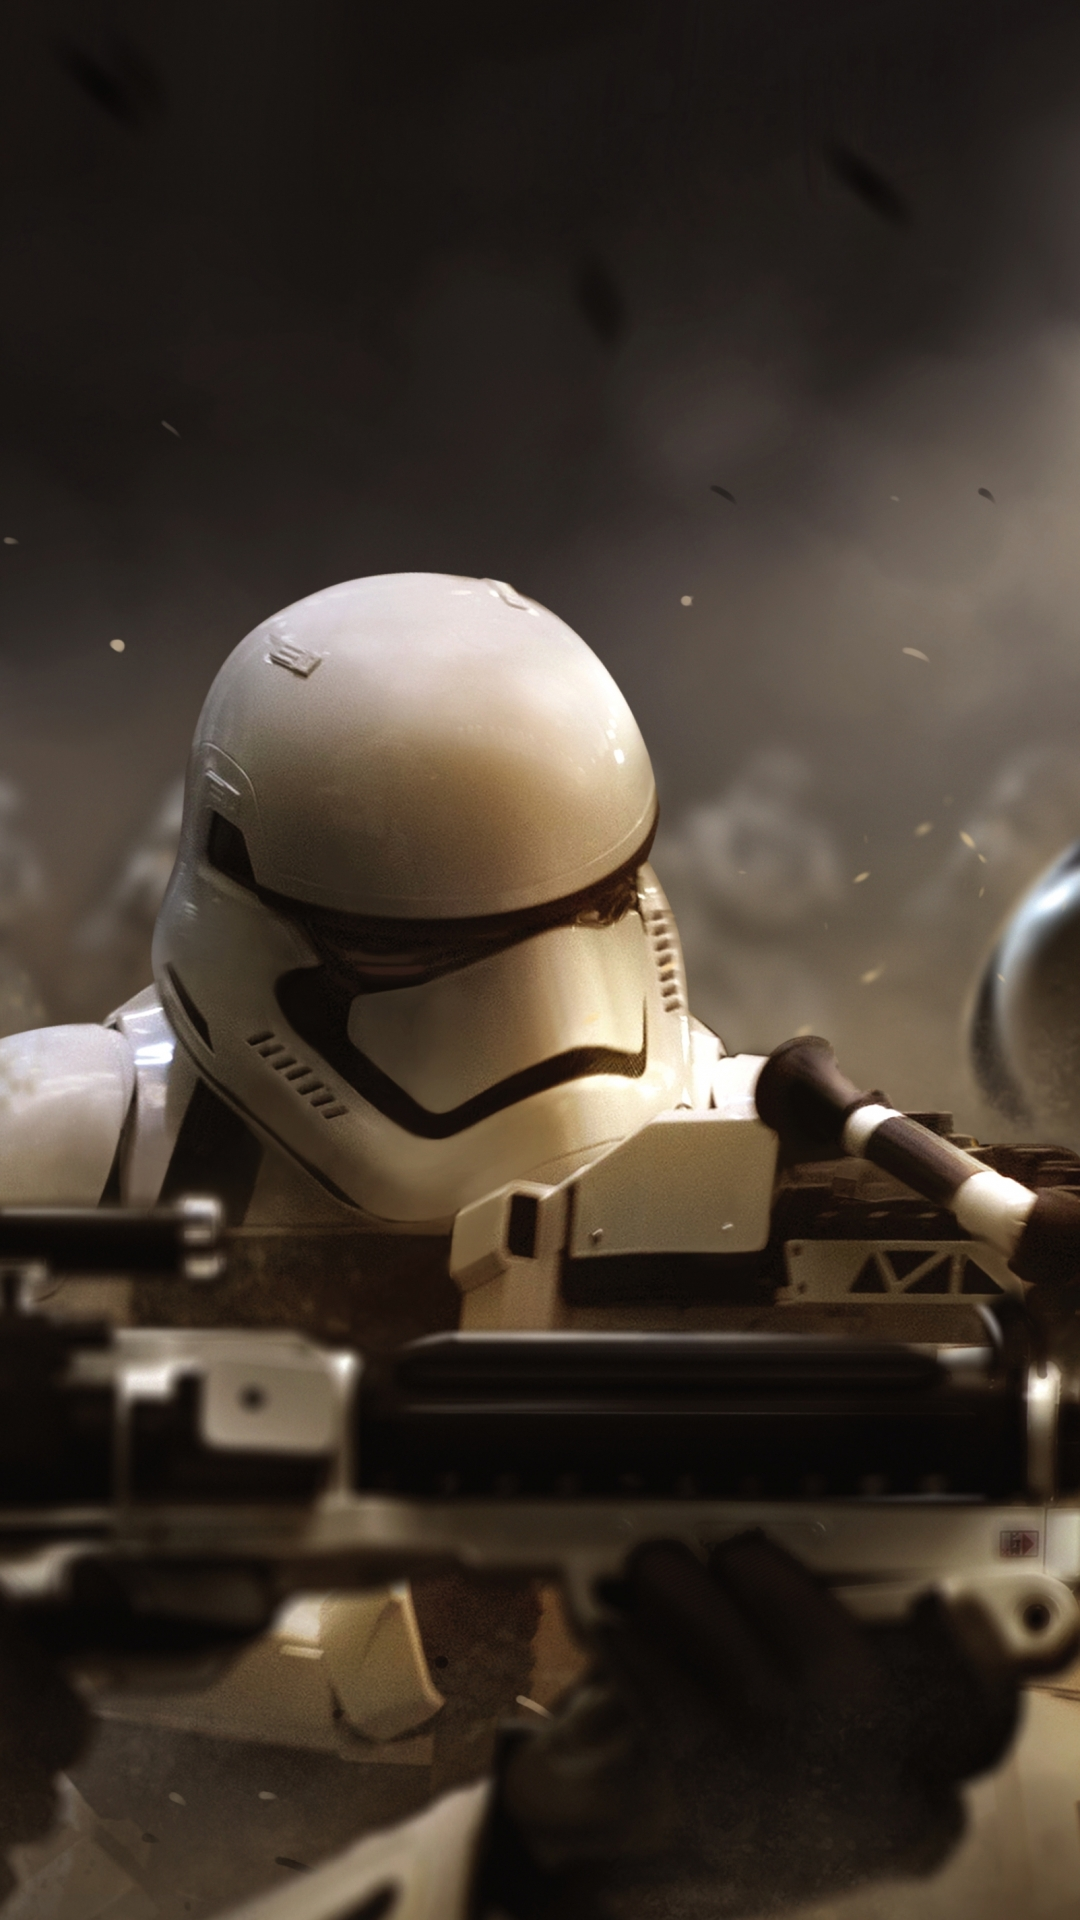 Star Wars The Force Awakens Wallpaper Stormtrooper Offensive